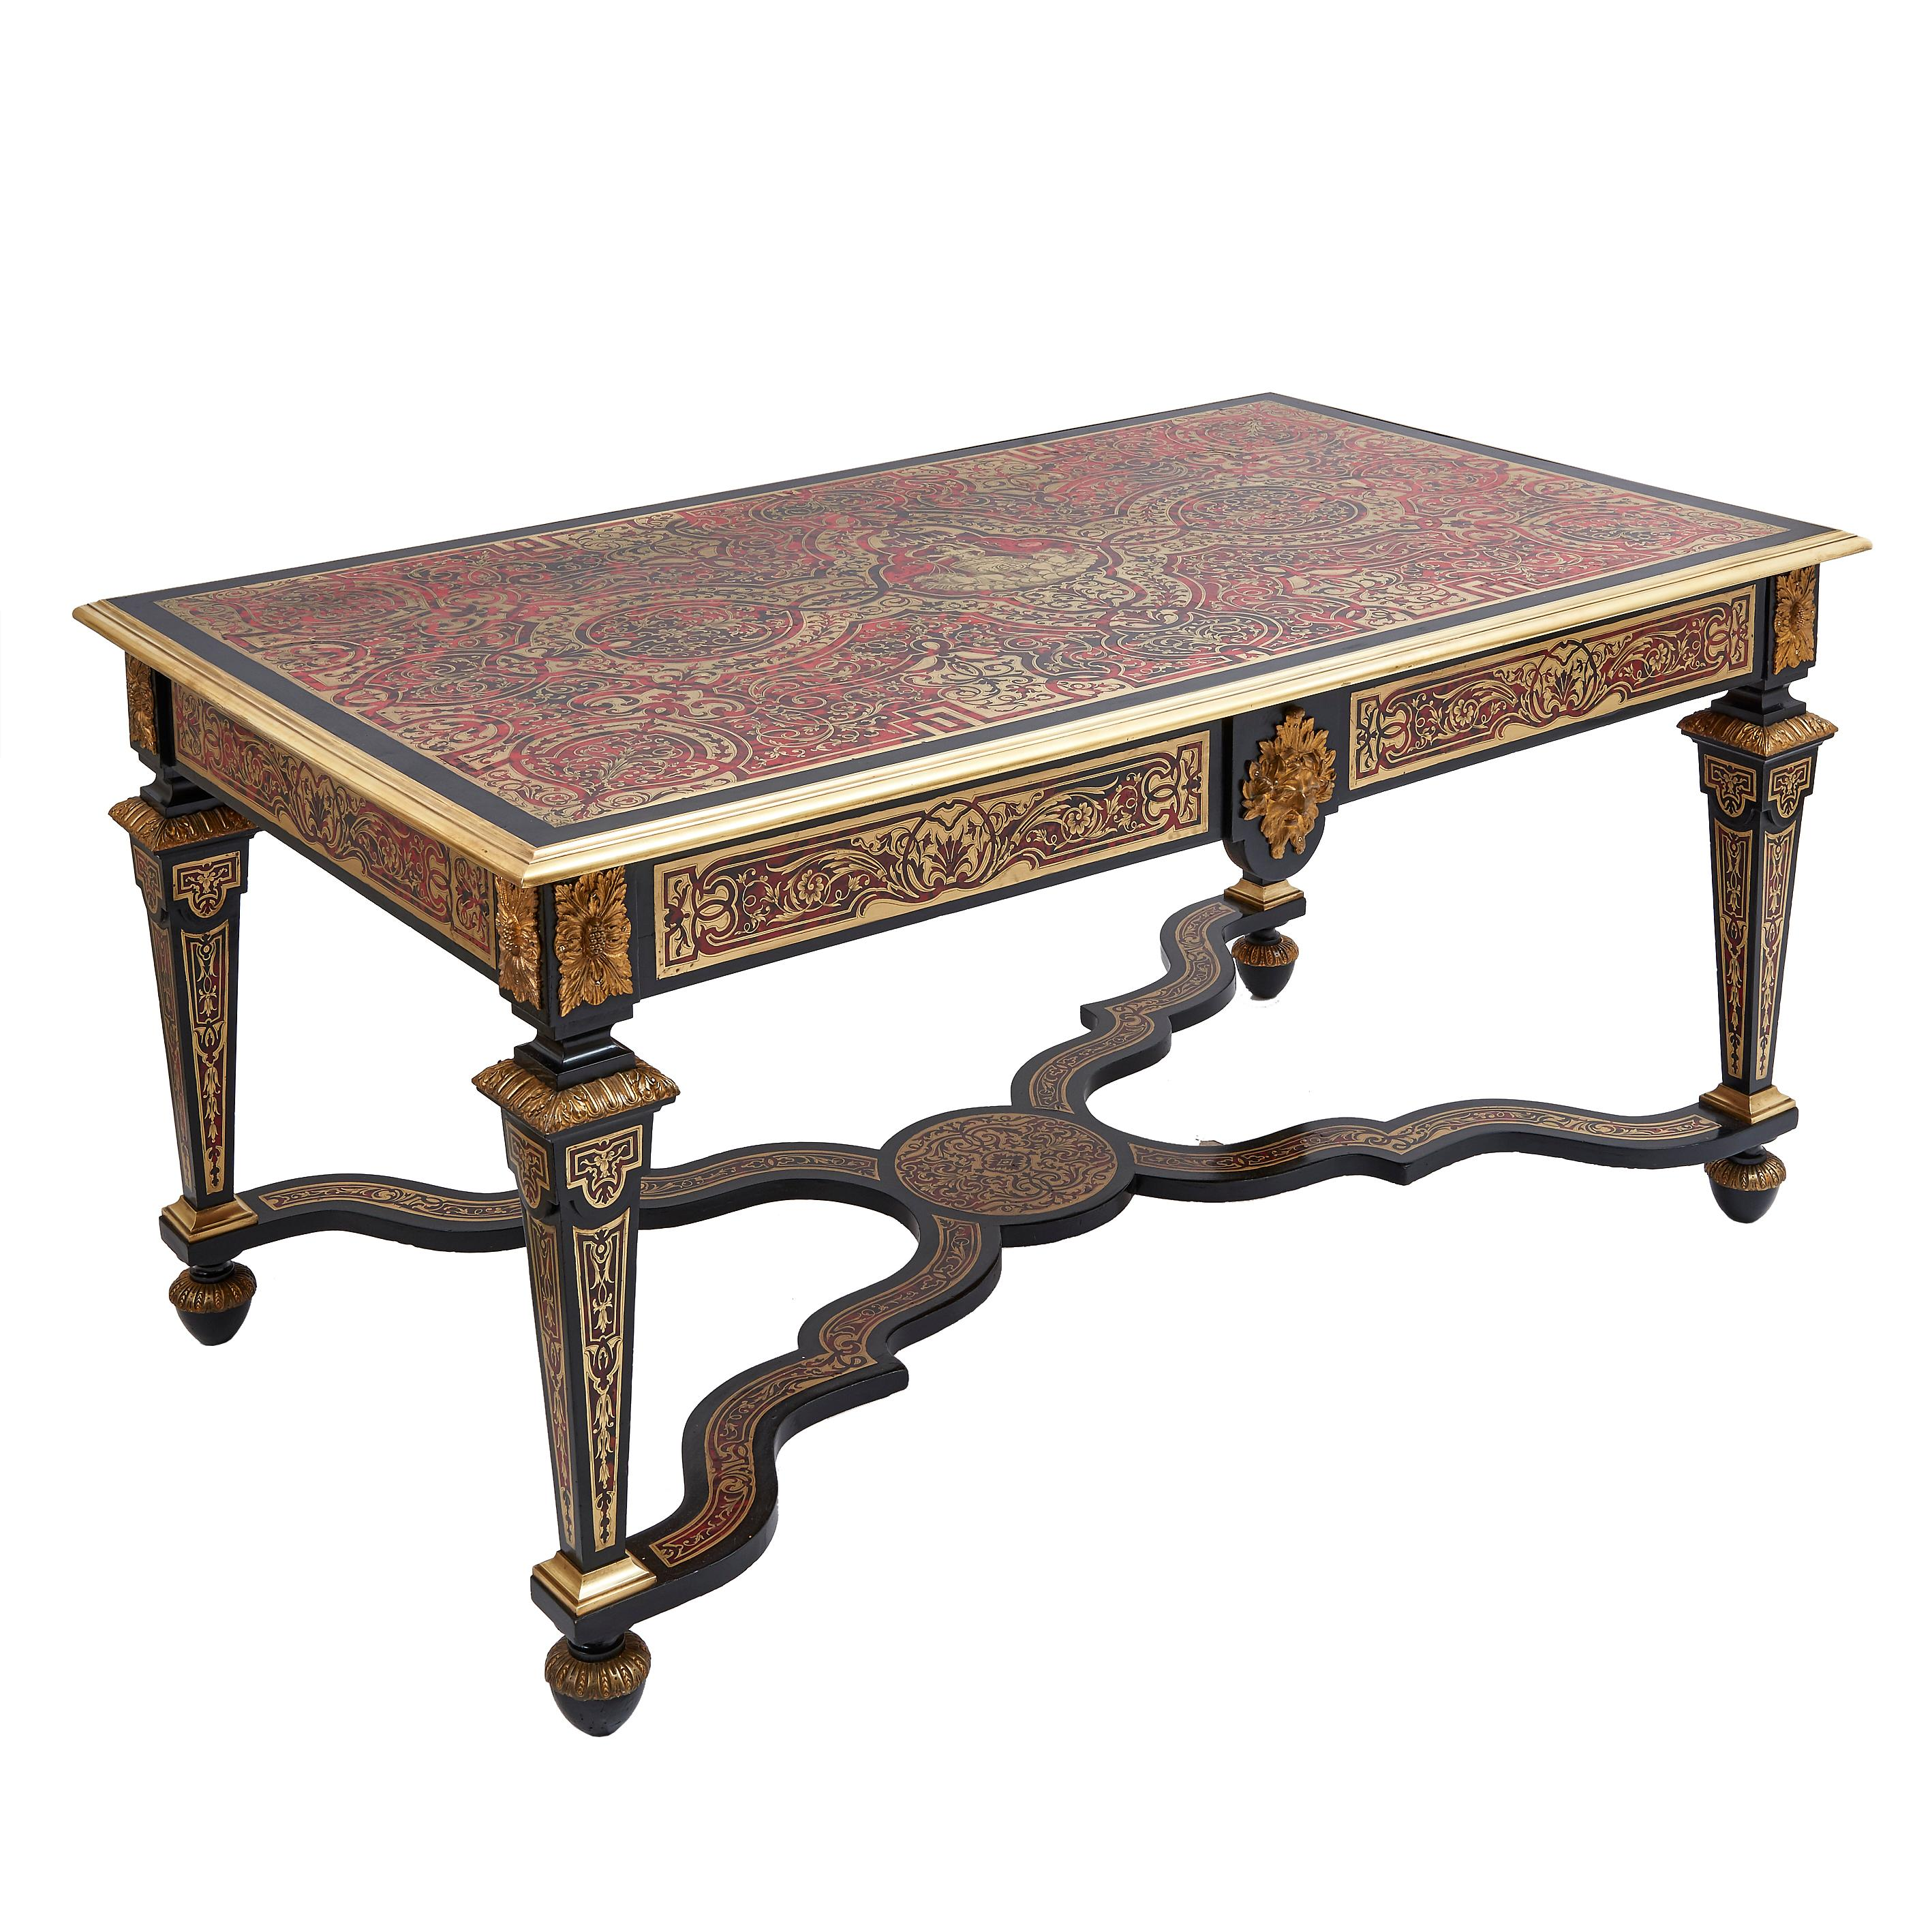 French Louis Xiv Style Boulle Desk With Tortoises And Brass Inlay For At 1stdibs